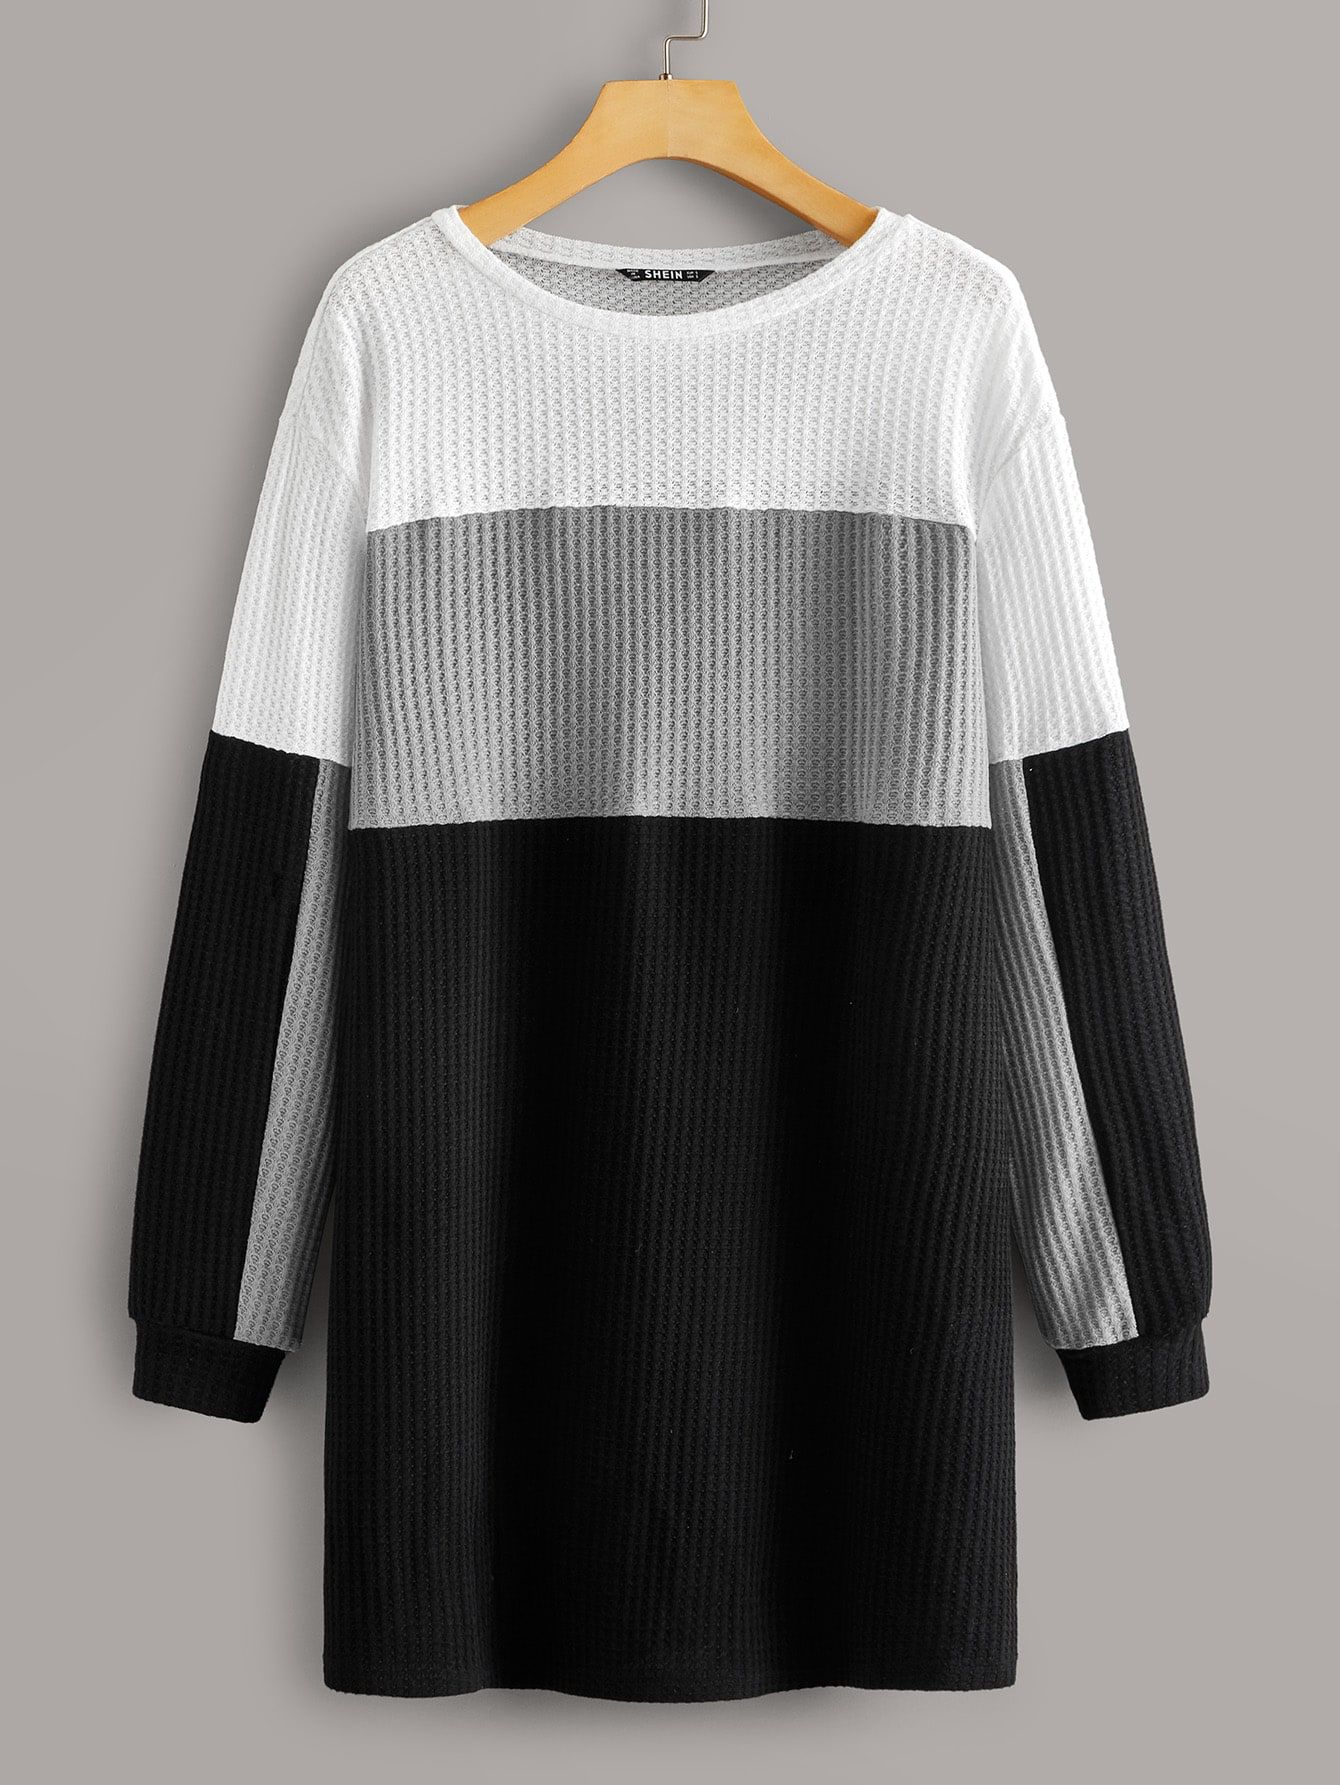 Colorblock Waffle Knit Dress Check Out This Colorblock Waffle Knit Dress On Shein And Explore More To Meet Your Fashion Needs Knit Dress Waffle Knit Clothes [ 1785 x 1340 Pixel ]